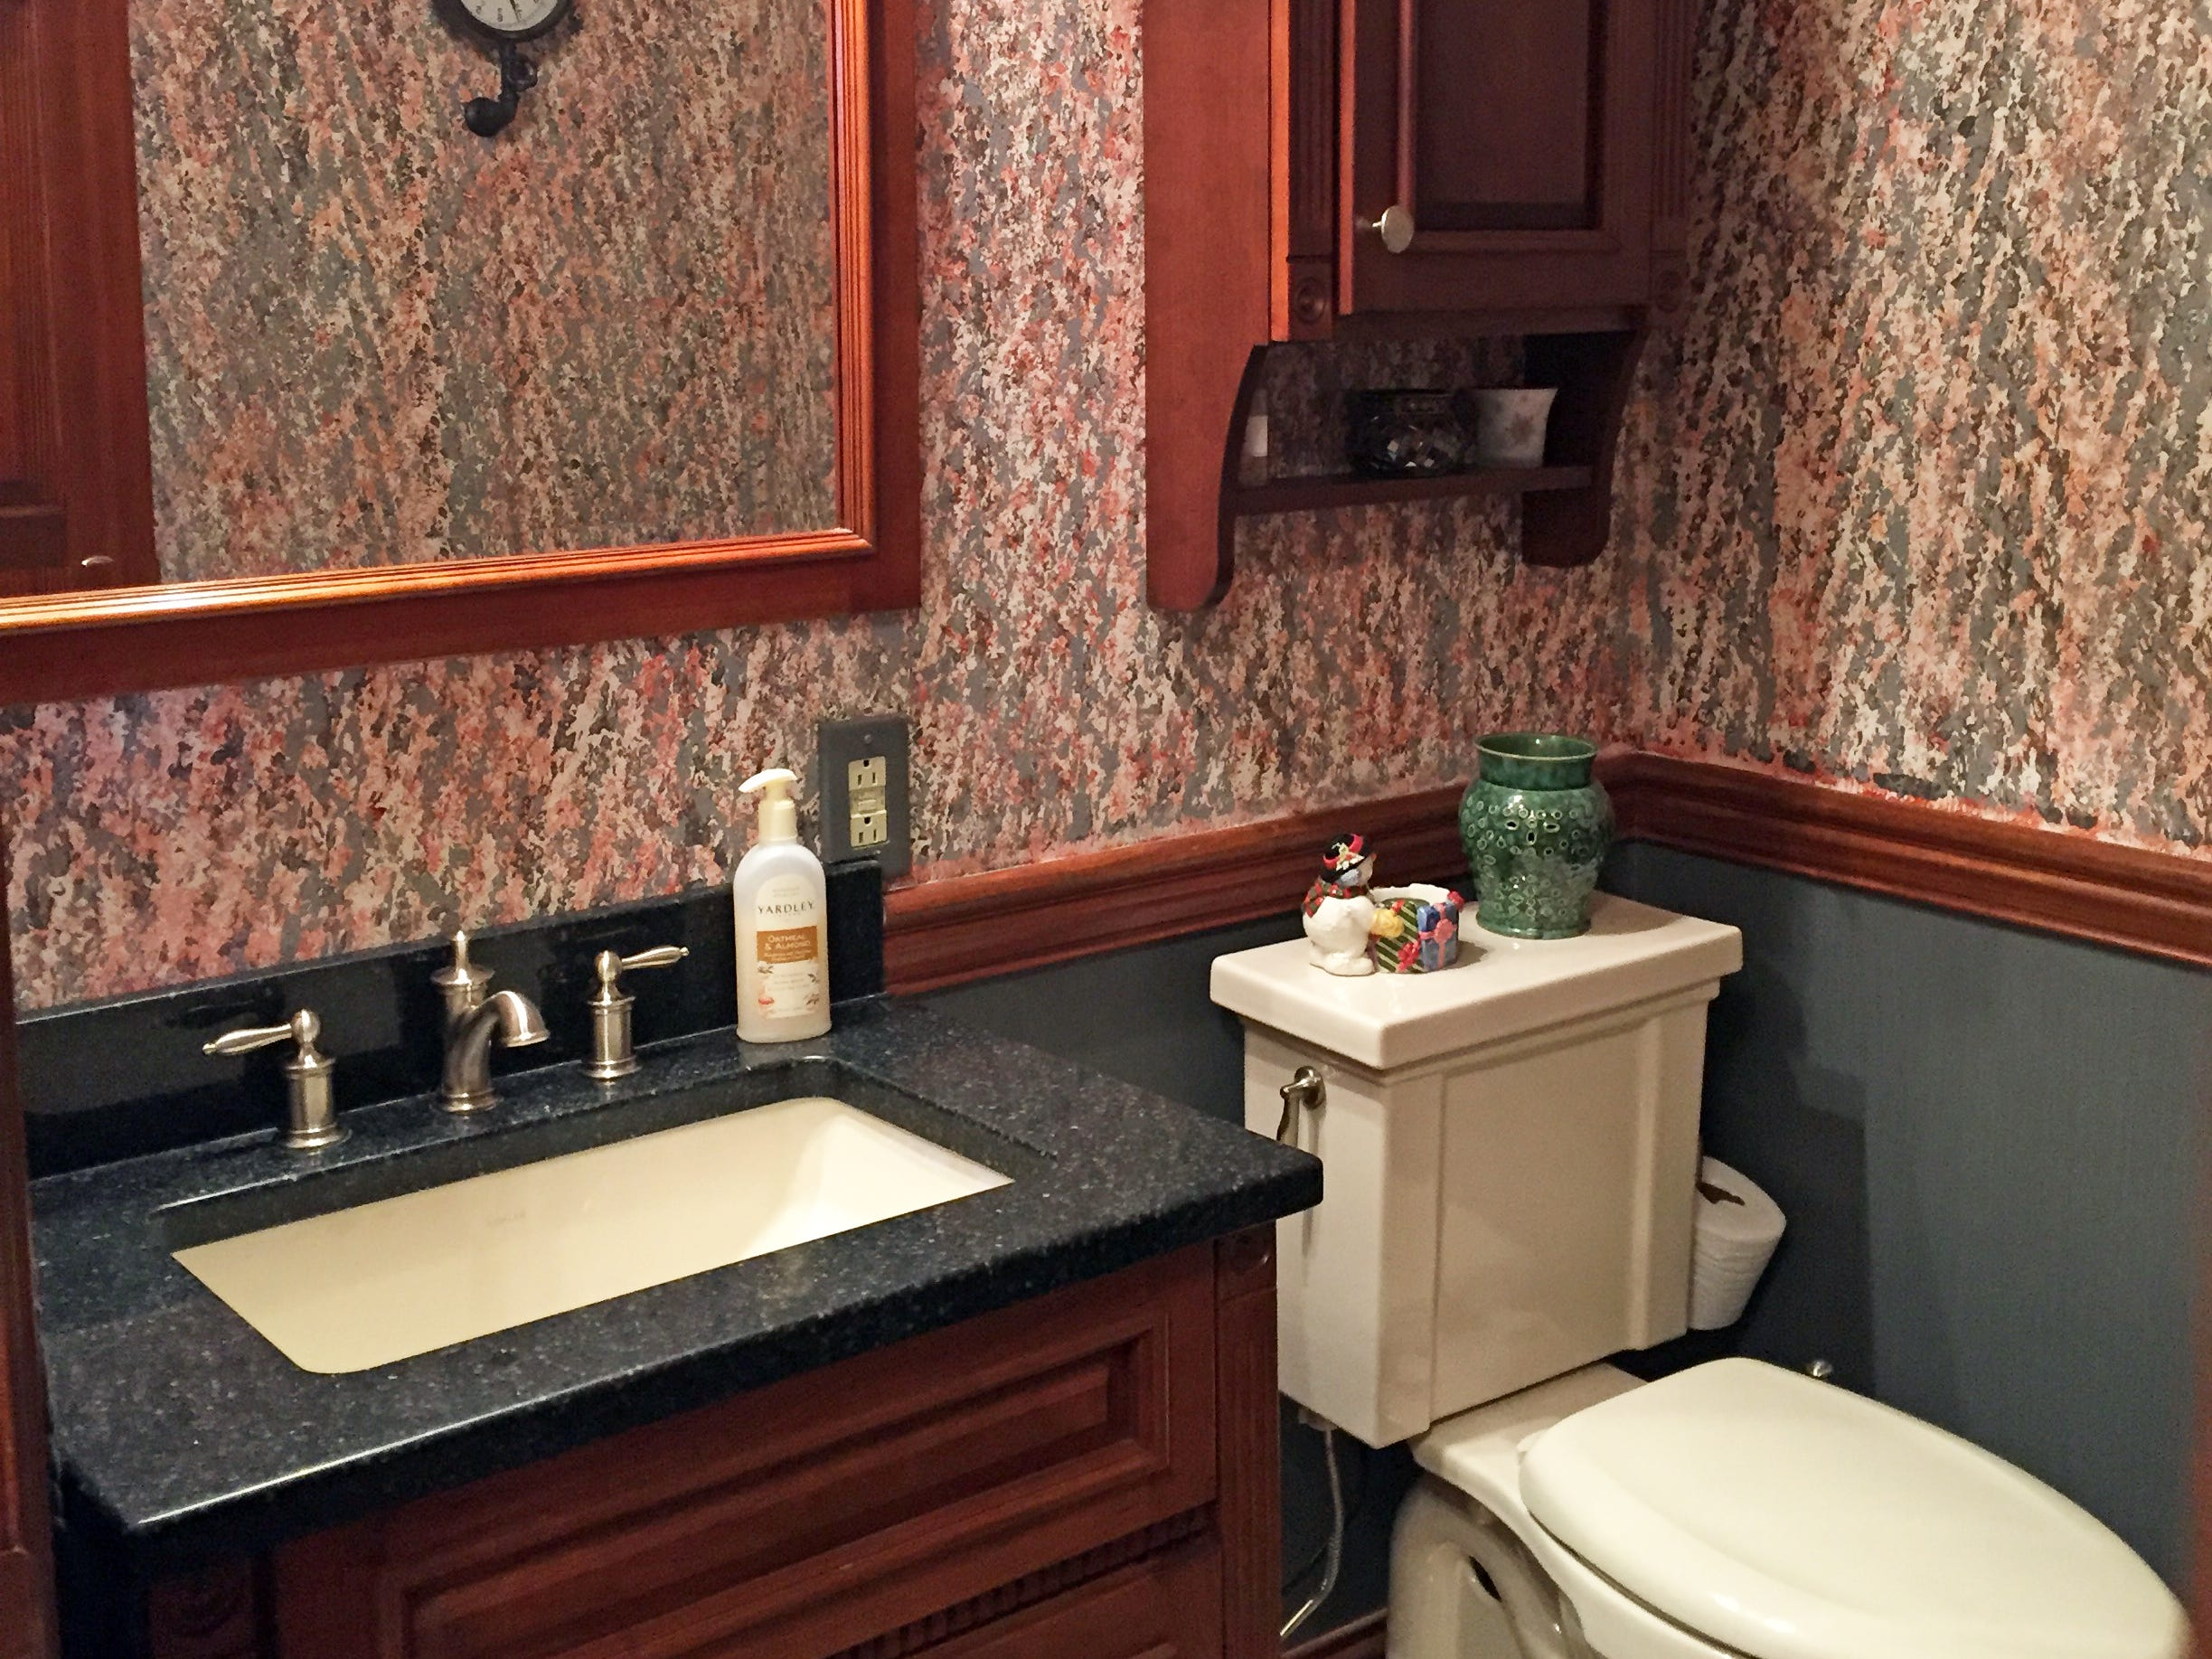 The homeowners designed their own bathrooms and did all the tile work themselves.